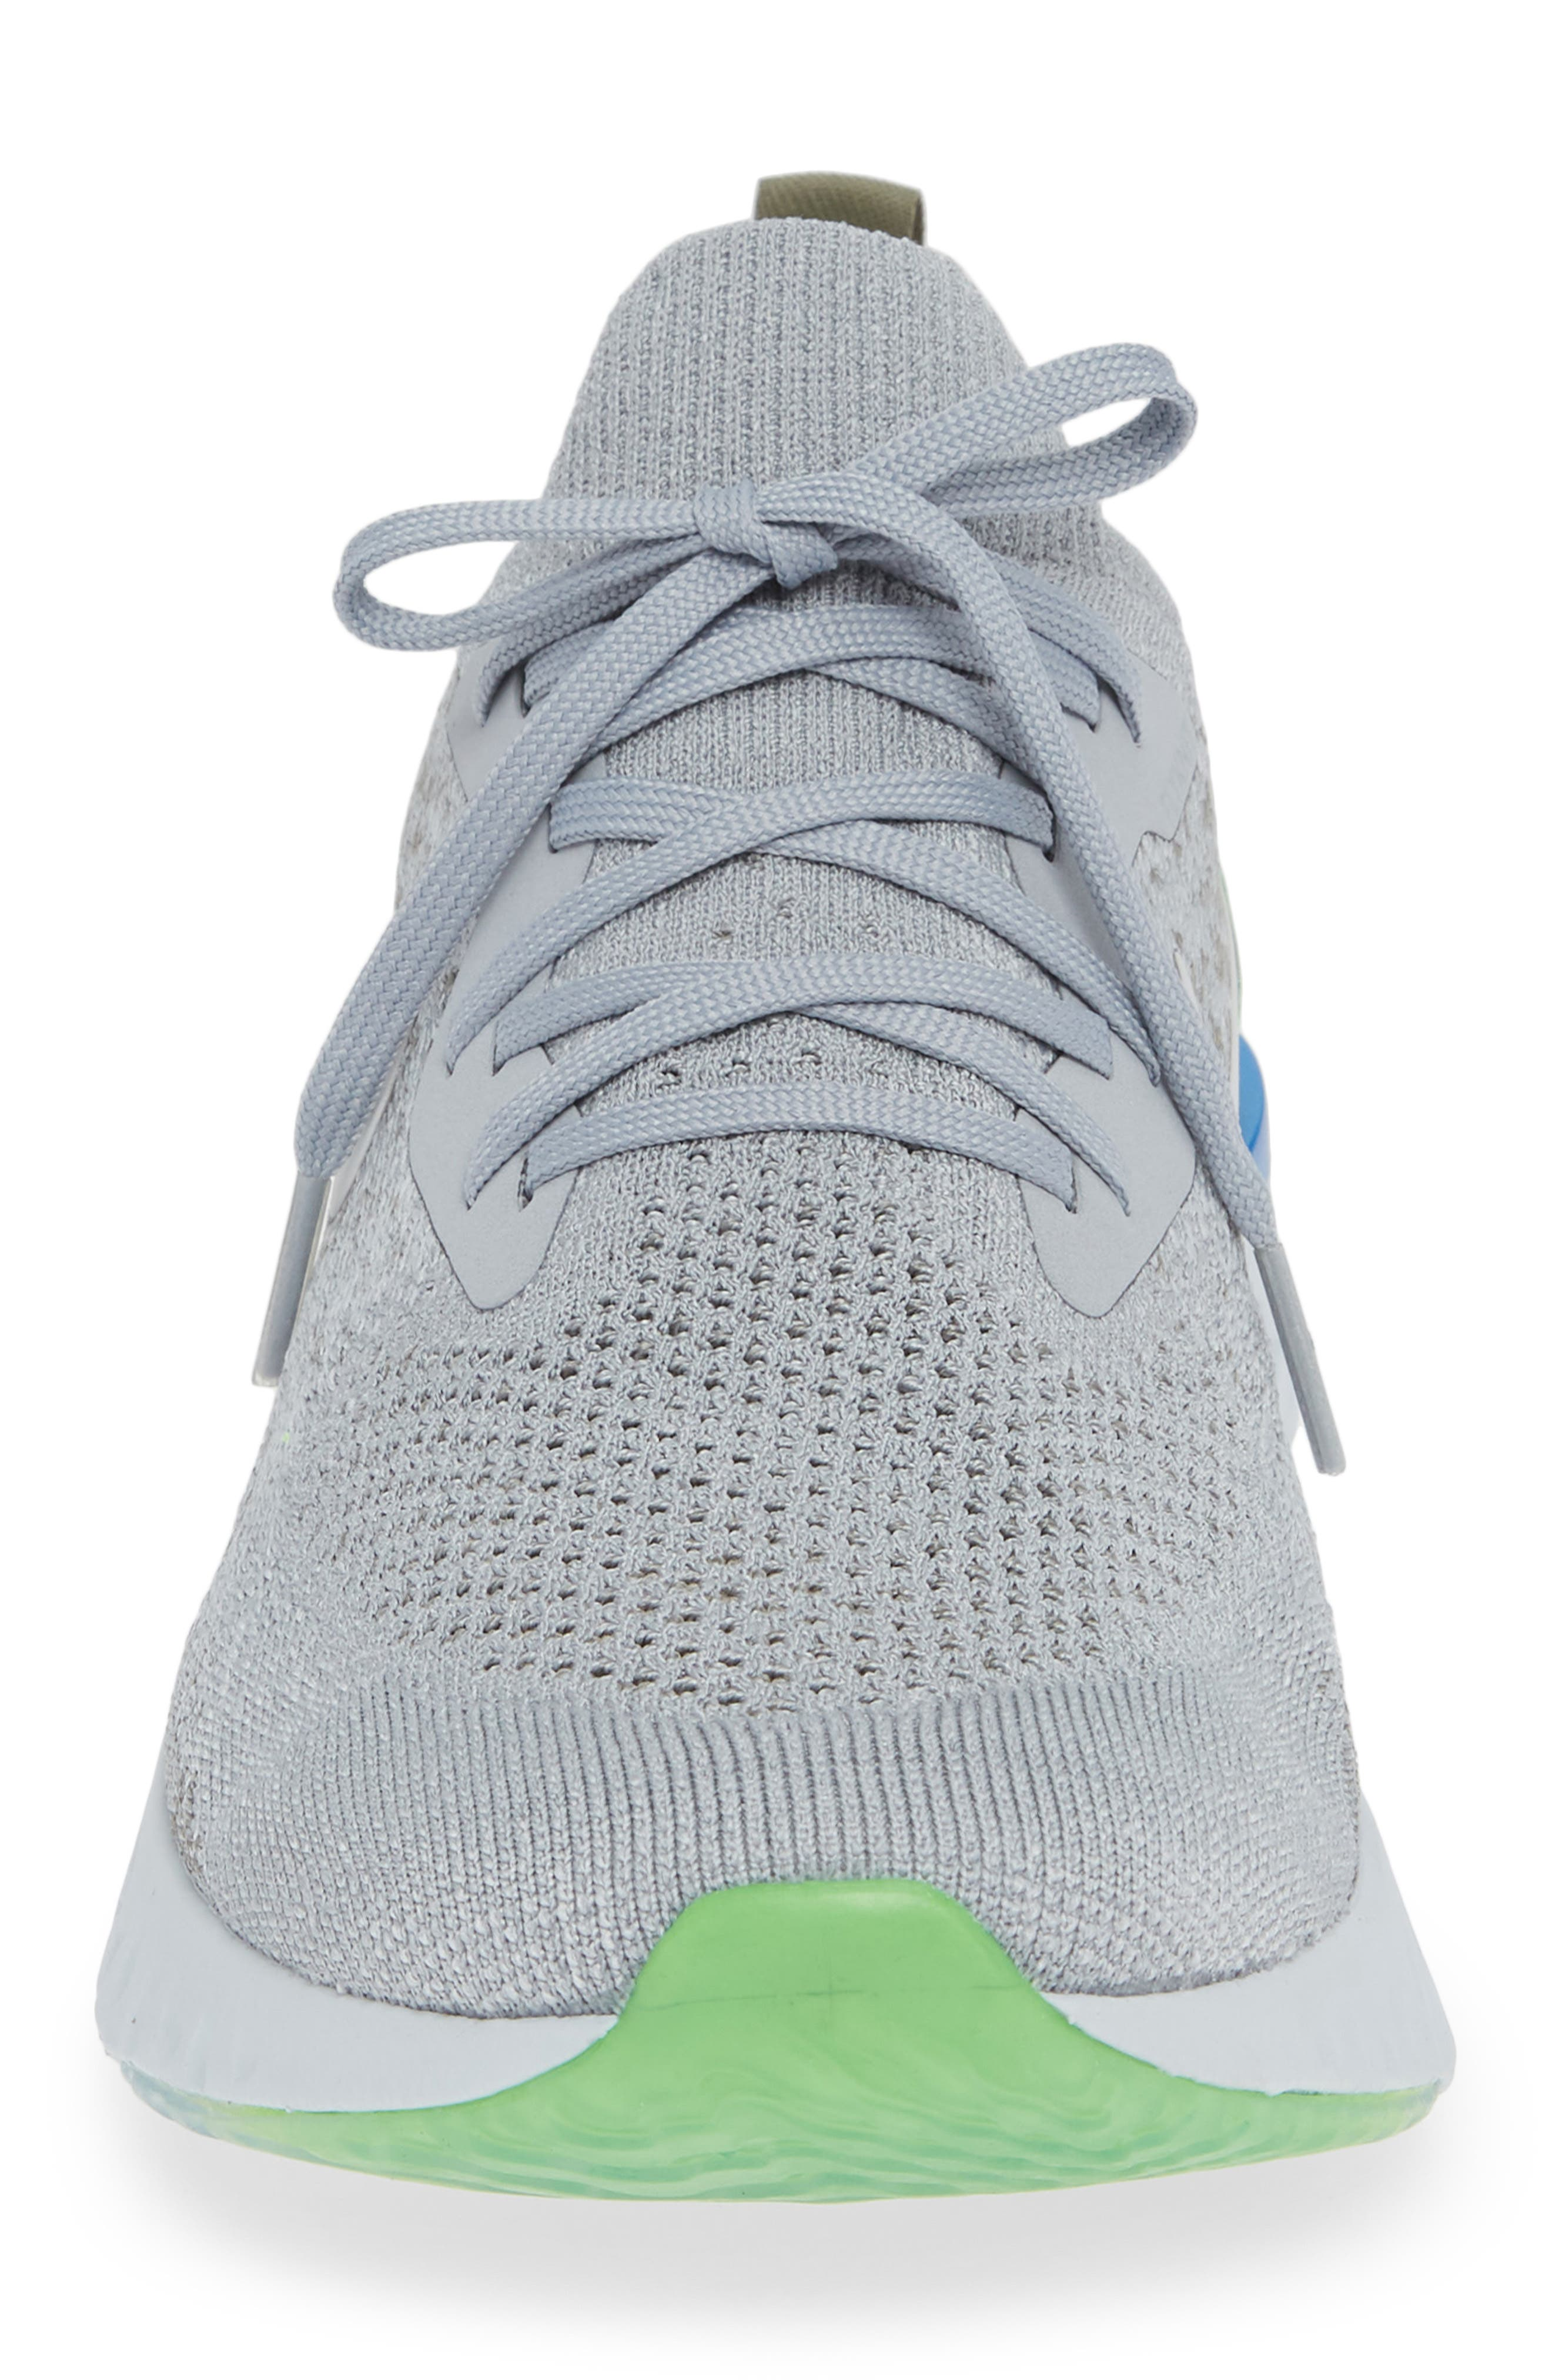 Epic React Flyknit Running Shoe,                             Alternate thumbnail 4, color,                             GREY